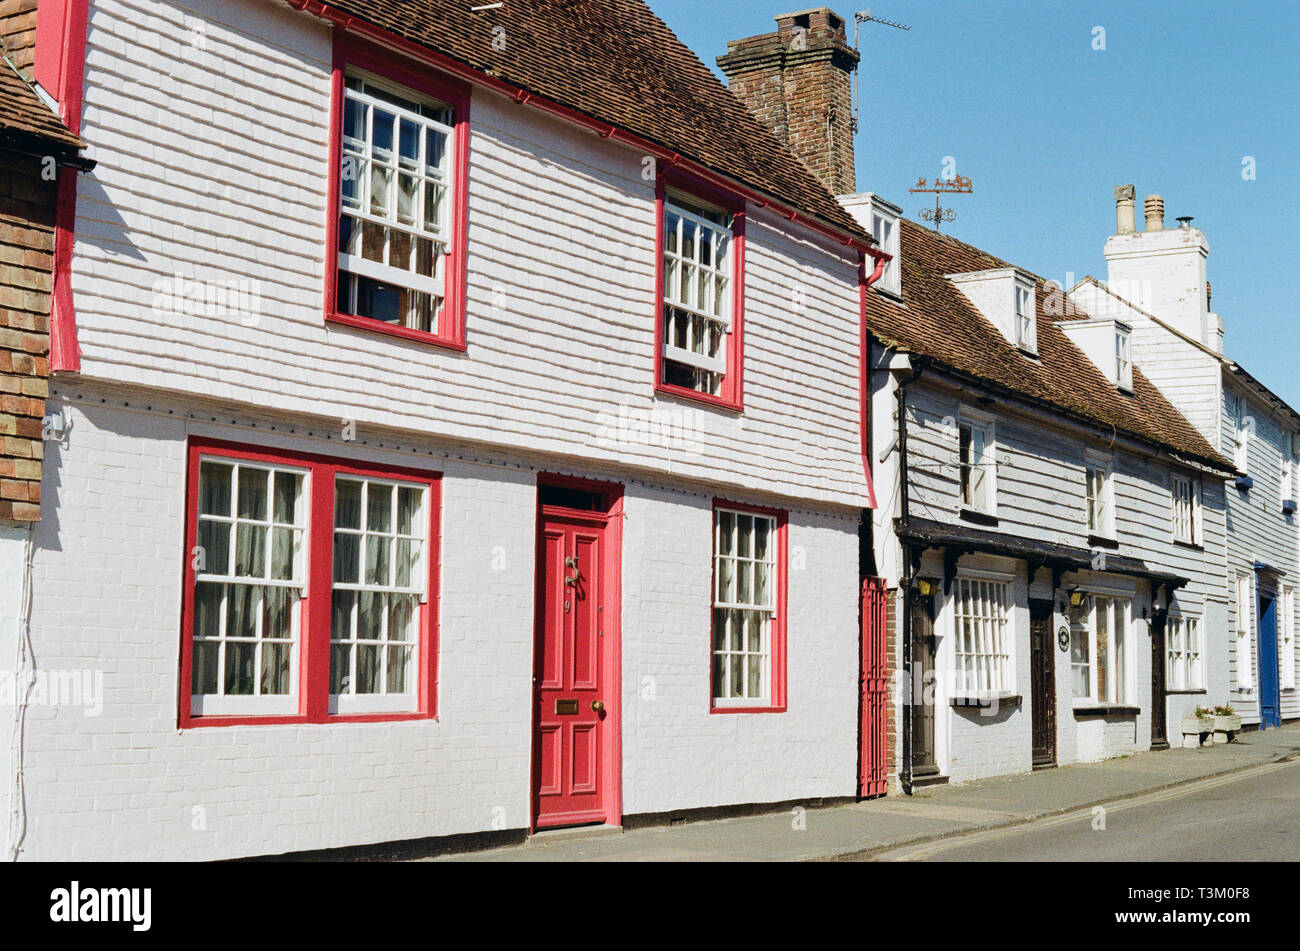 Old weatherboarded houses along Mount Street, in the historic town of Battle, East Sussex, UK, in the heart of 1066 country - Stock Image